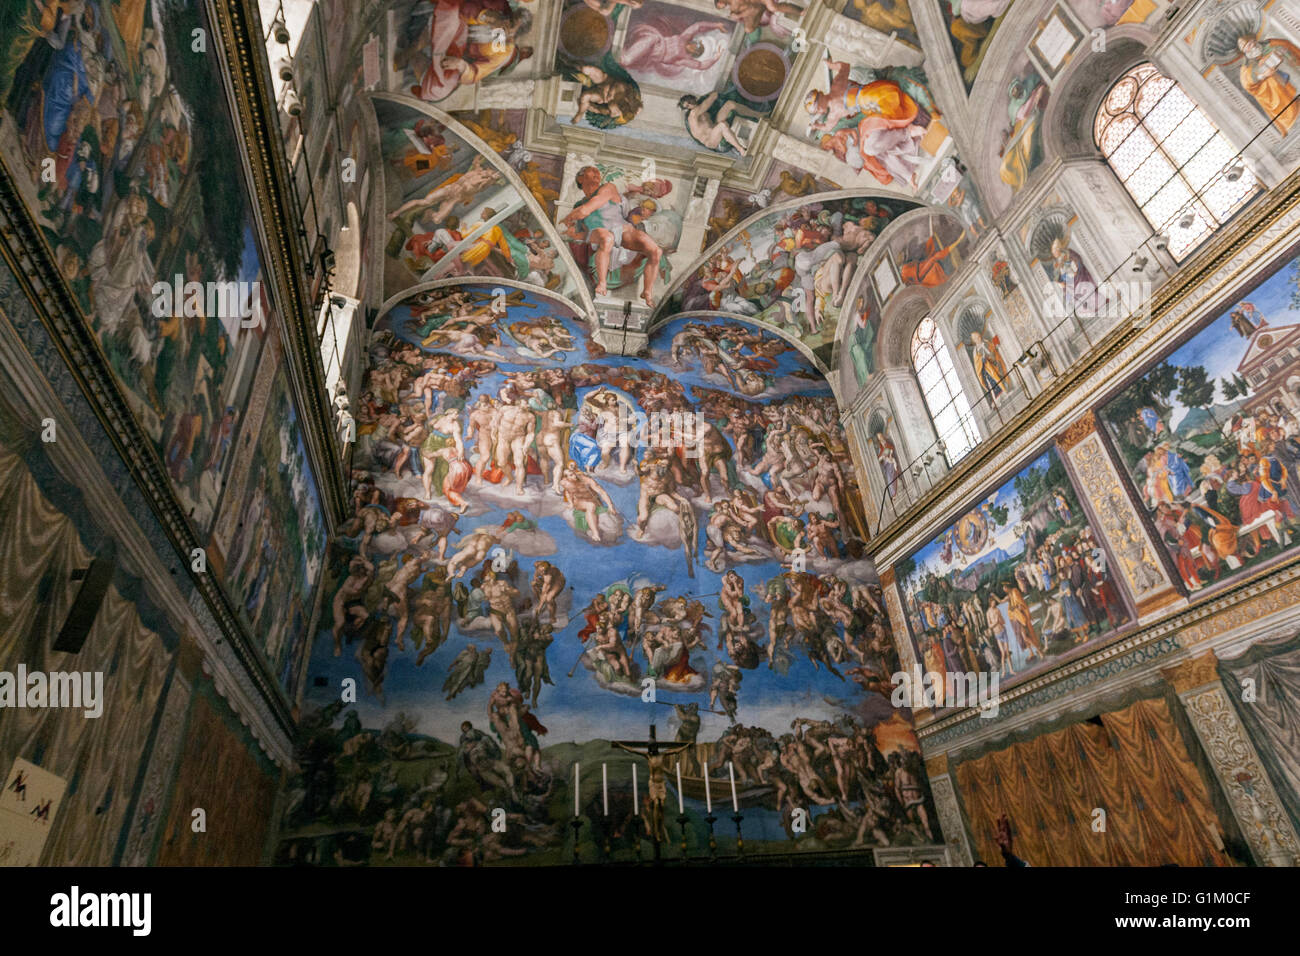 The Mural On Ceiling Of Sistine Chapel Was Painted By Hbm Blog